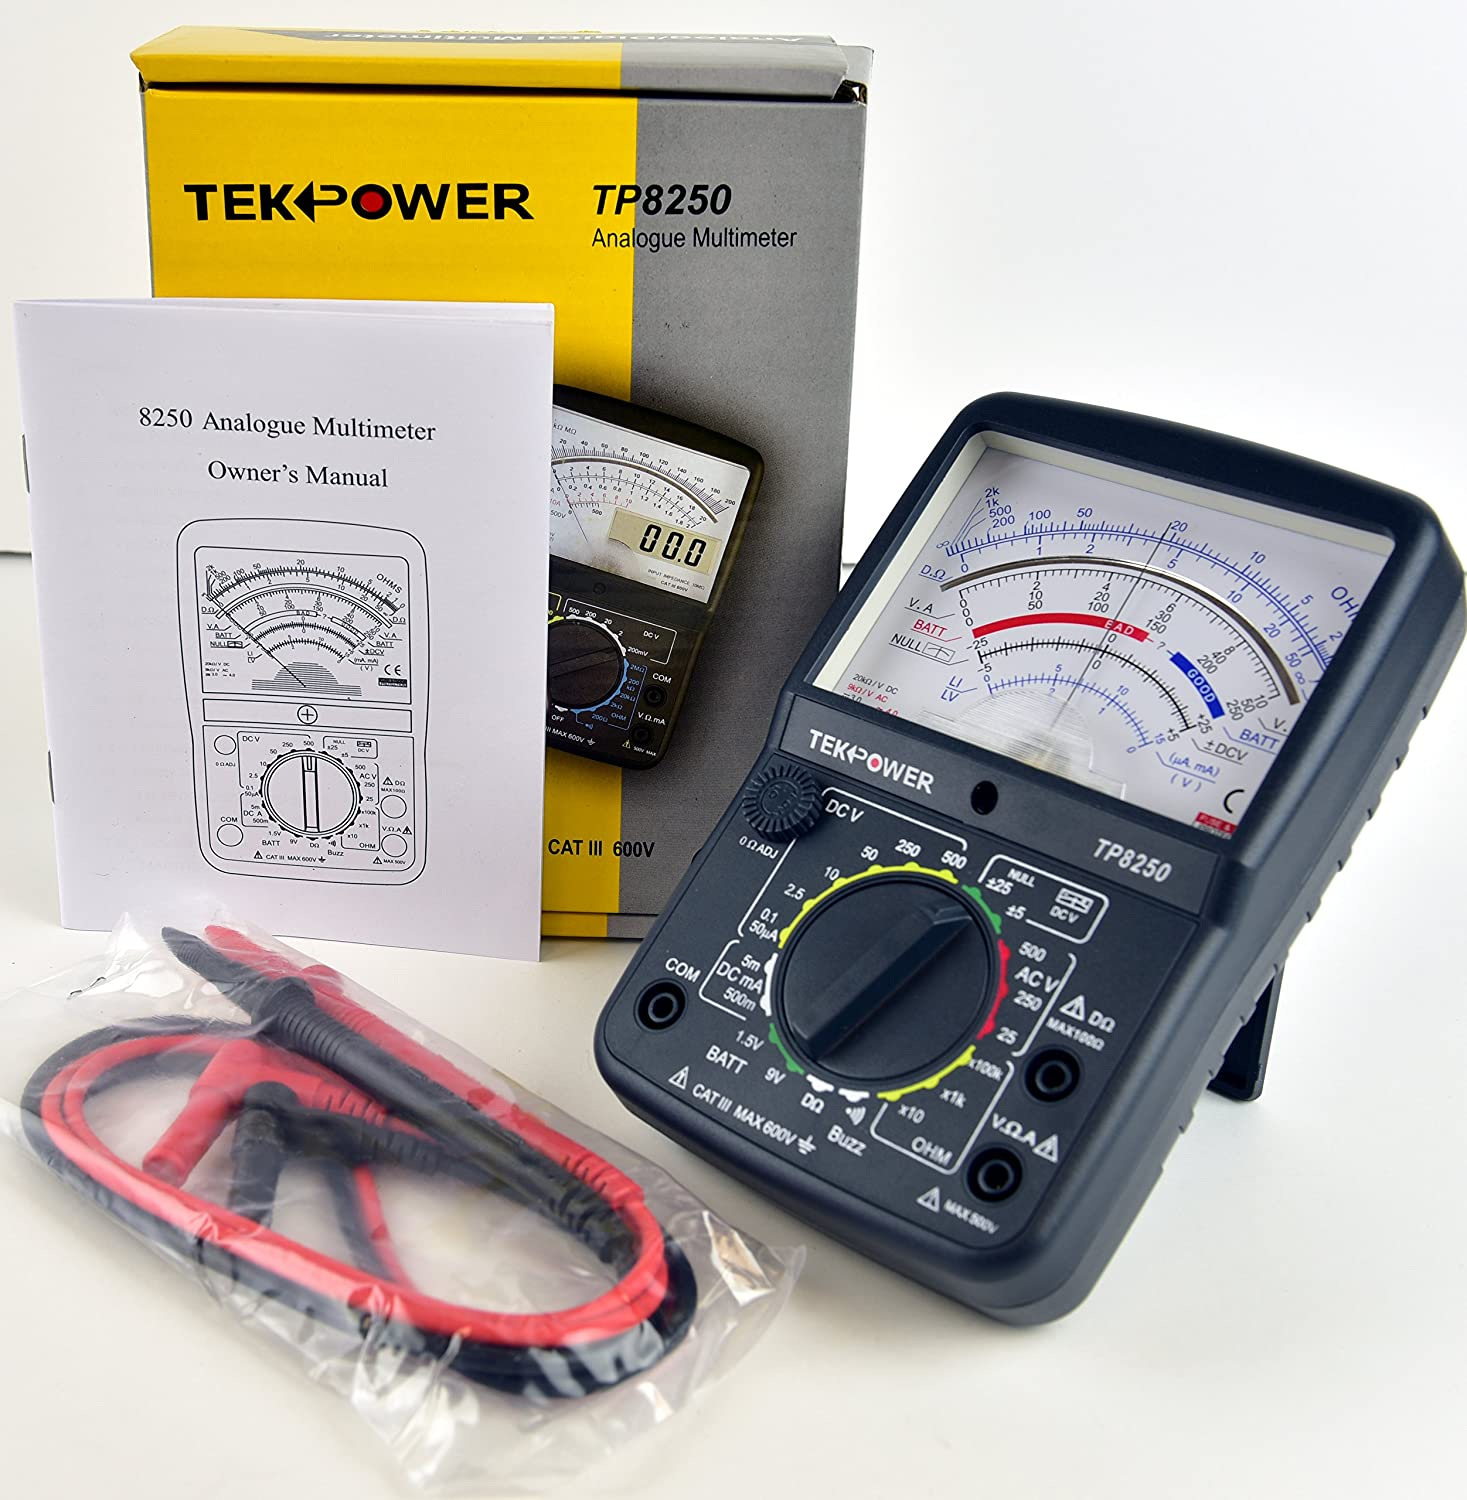 Tekpower Tp8250 Analog Multimeter With Null Middle Position 0 For 1m 100k 1 And Is Suitable Measuring Dc Voltages Up To Variation Measurement